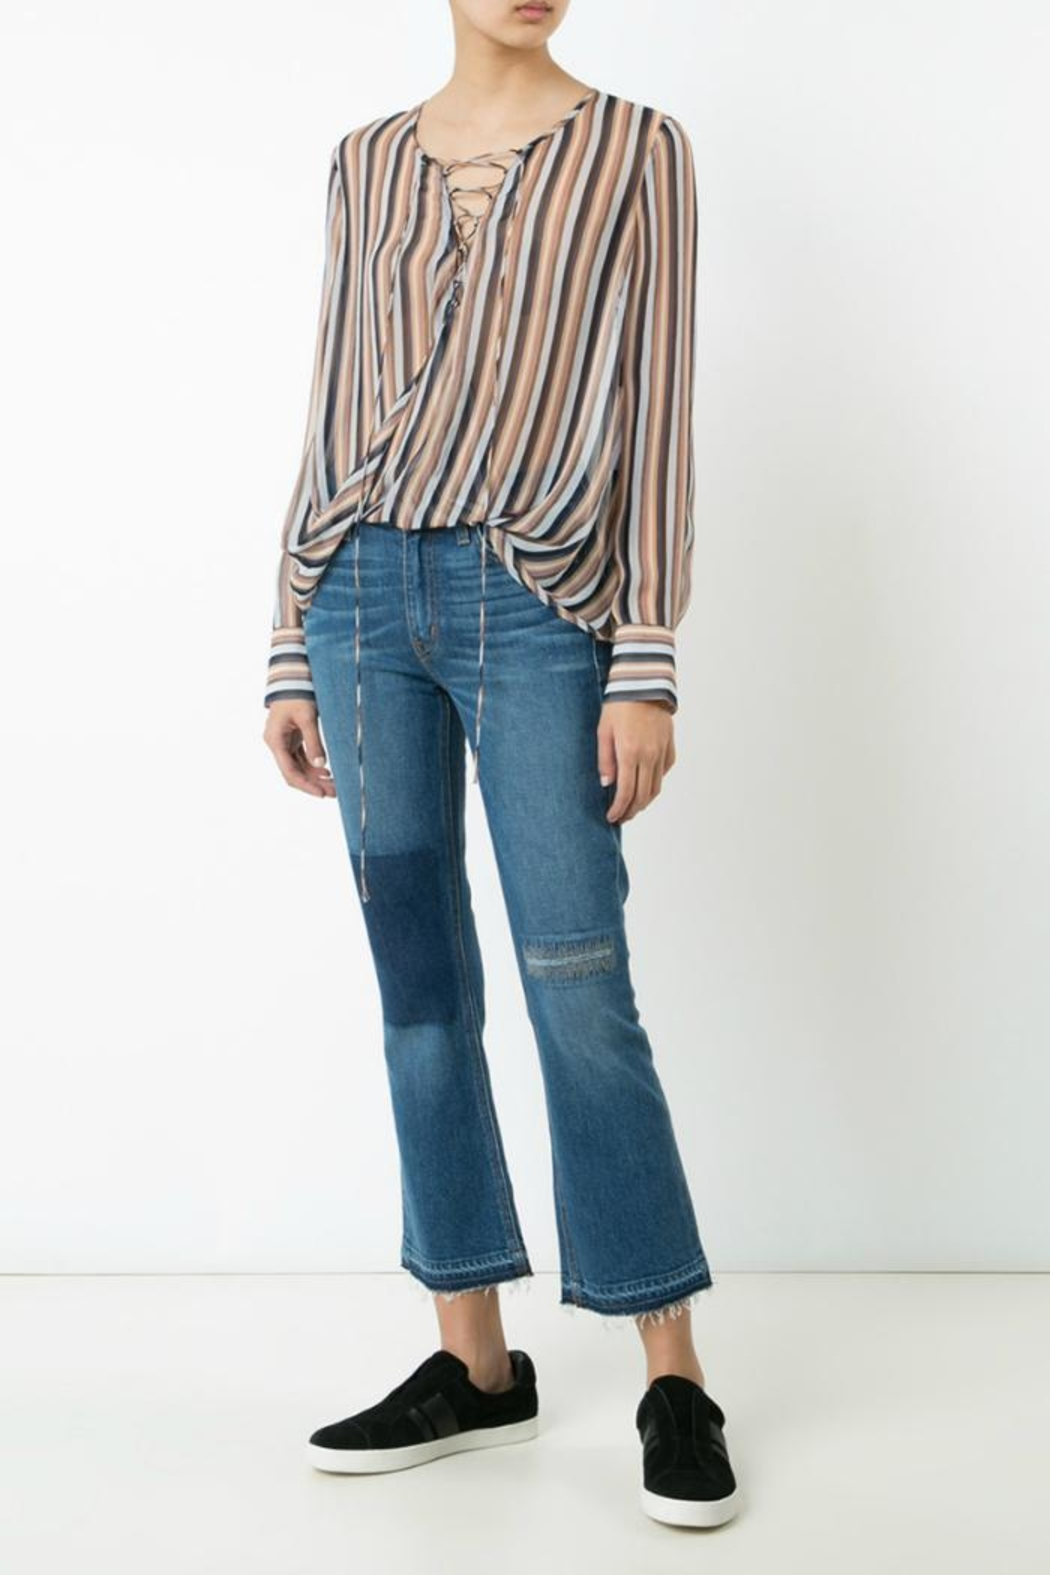 Derek Lam 10 Crosby Lace Up Blouse - Side Cropped Image